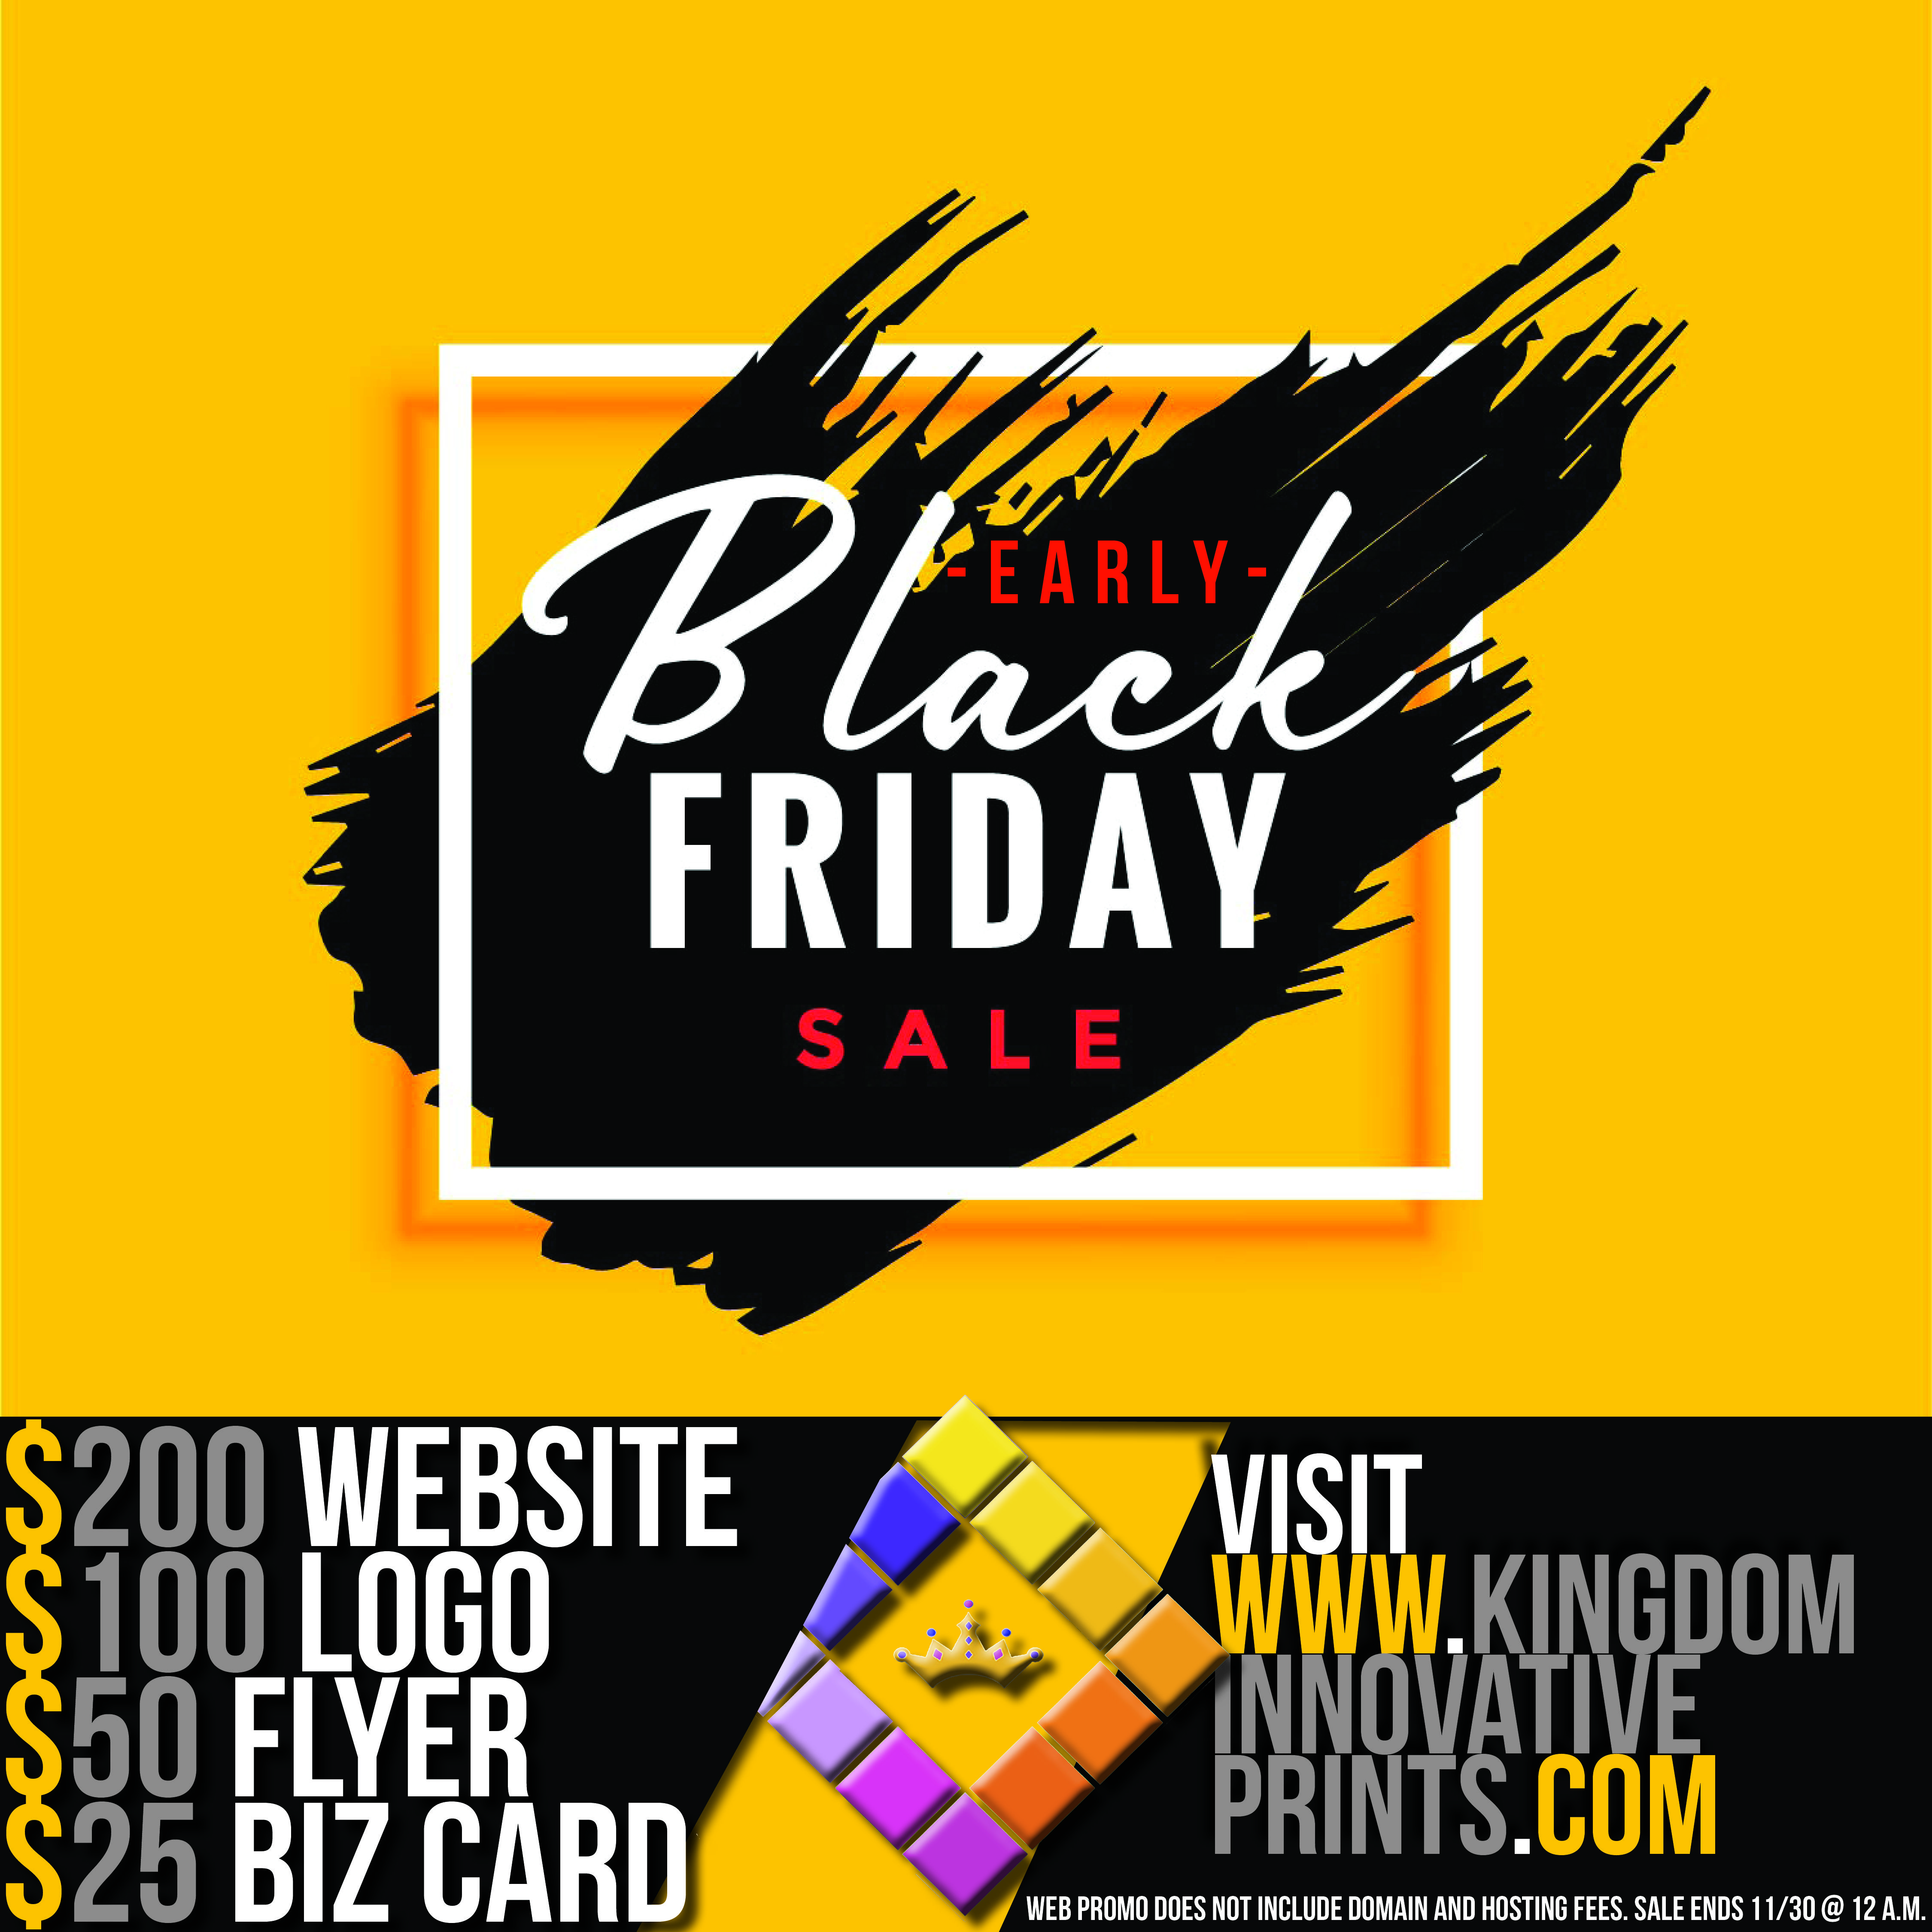 Get all your marketing materials now for discounted prices